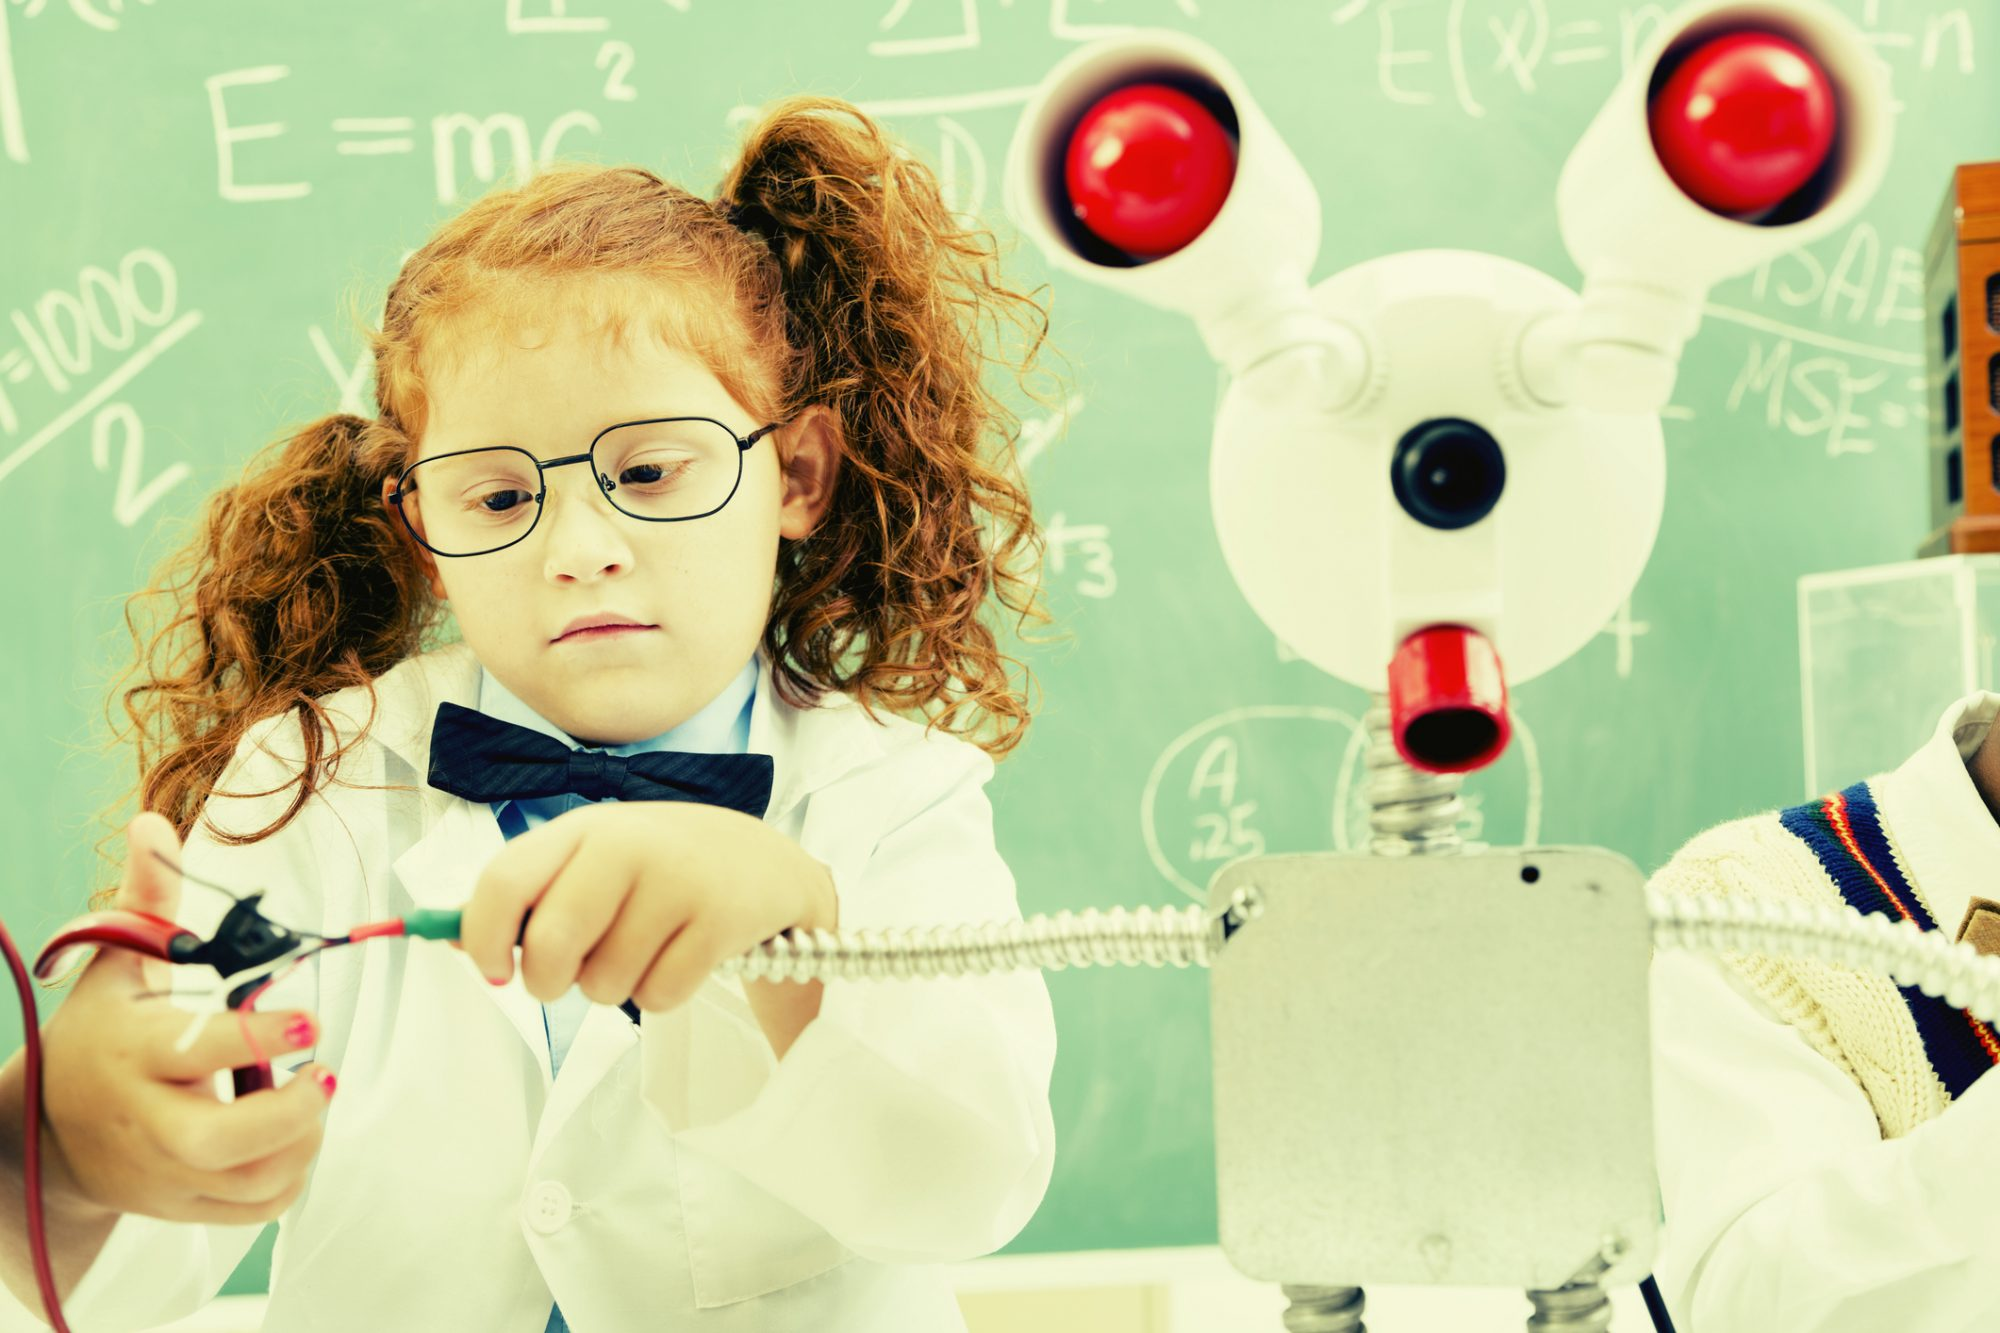 Retro revival image of children in science lab creating their own robot.